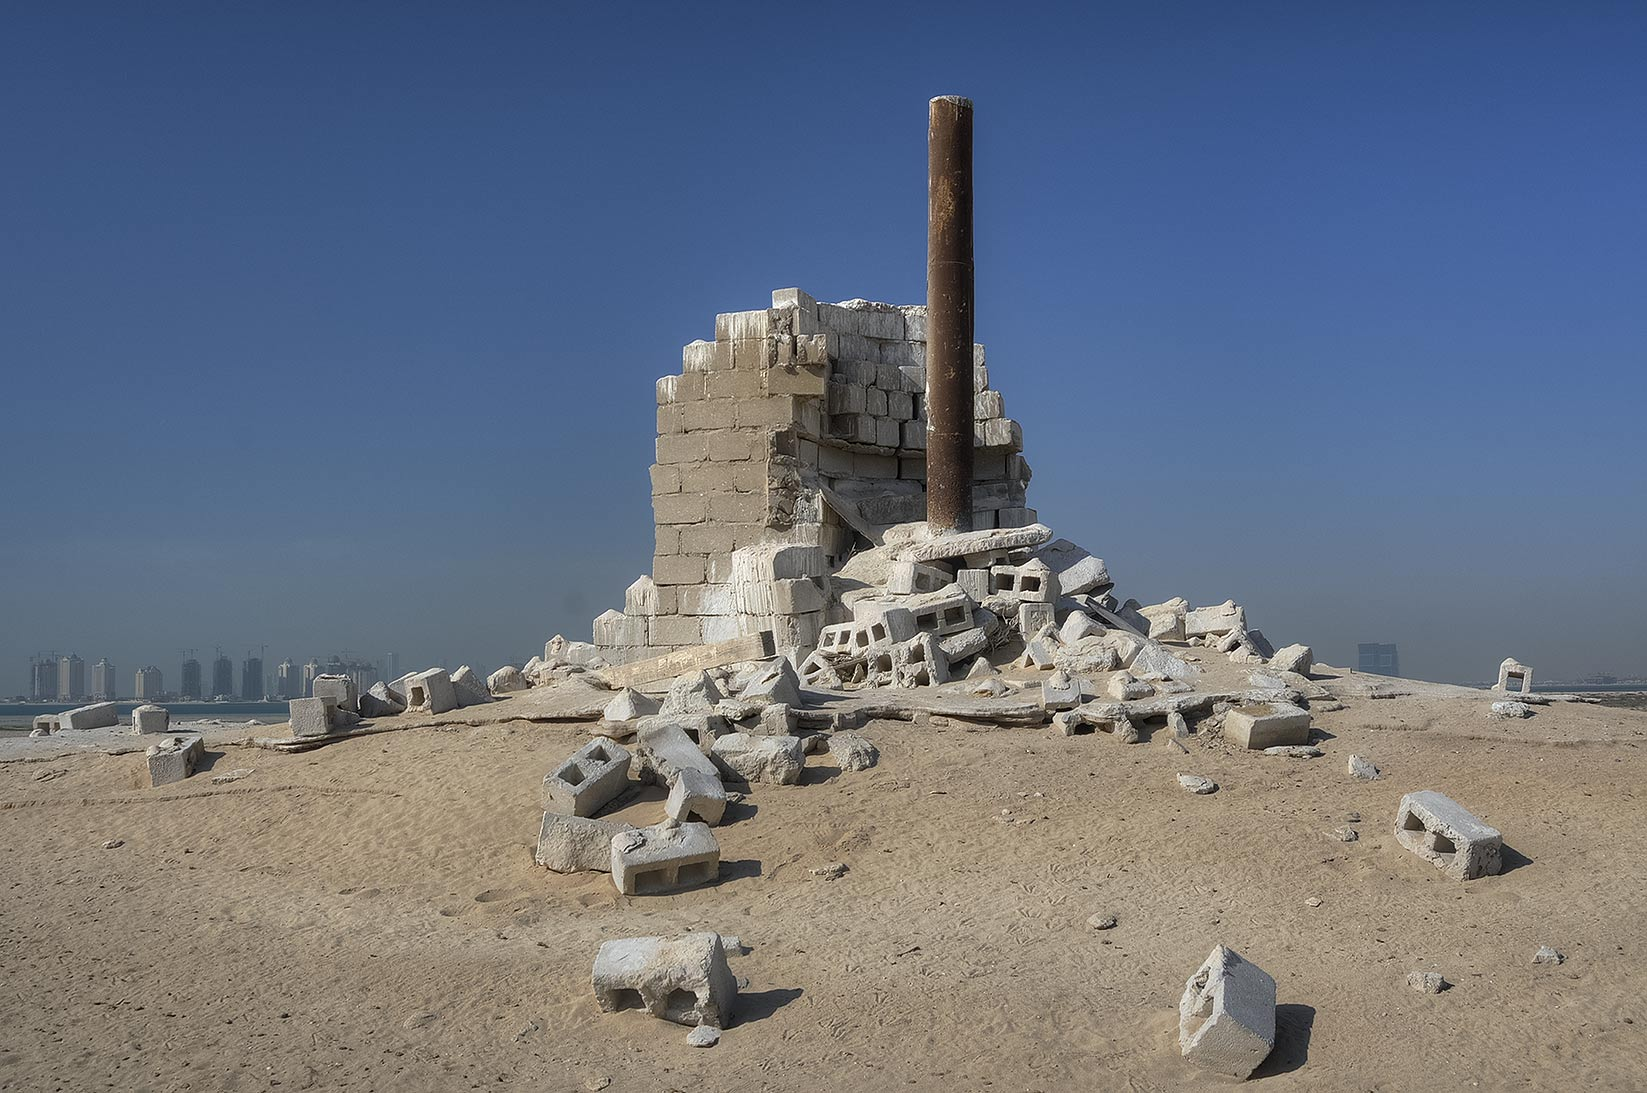 Chimney made from cinder blocks in Al Aaliya Island (Jazirat al Aliyah). Qatar